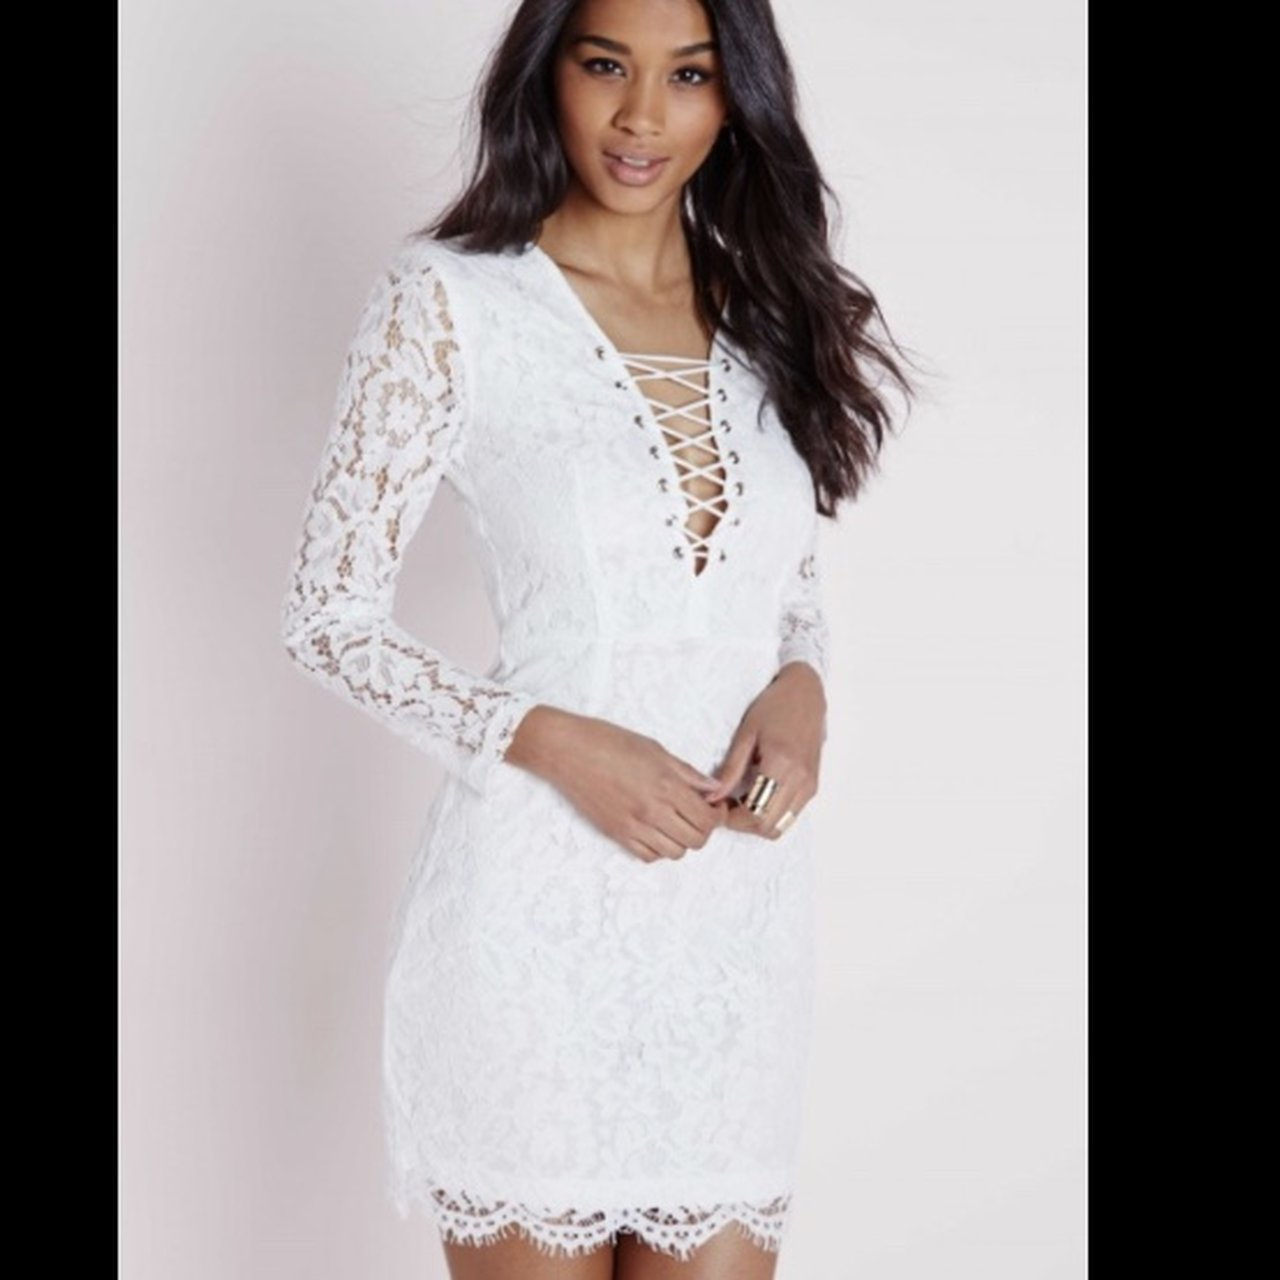 ff1b526e19 Missguided lace long sleeve dress with under layer Worn Size - Depop